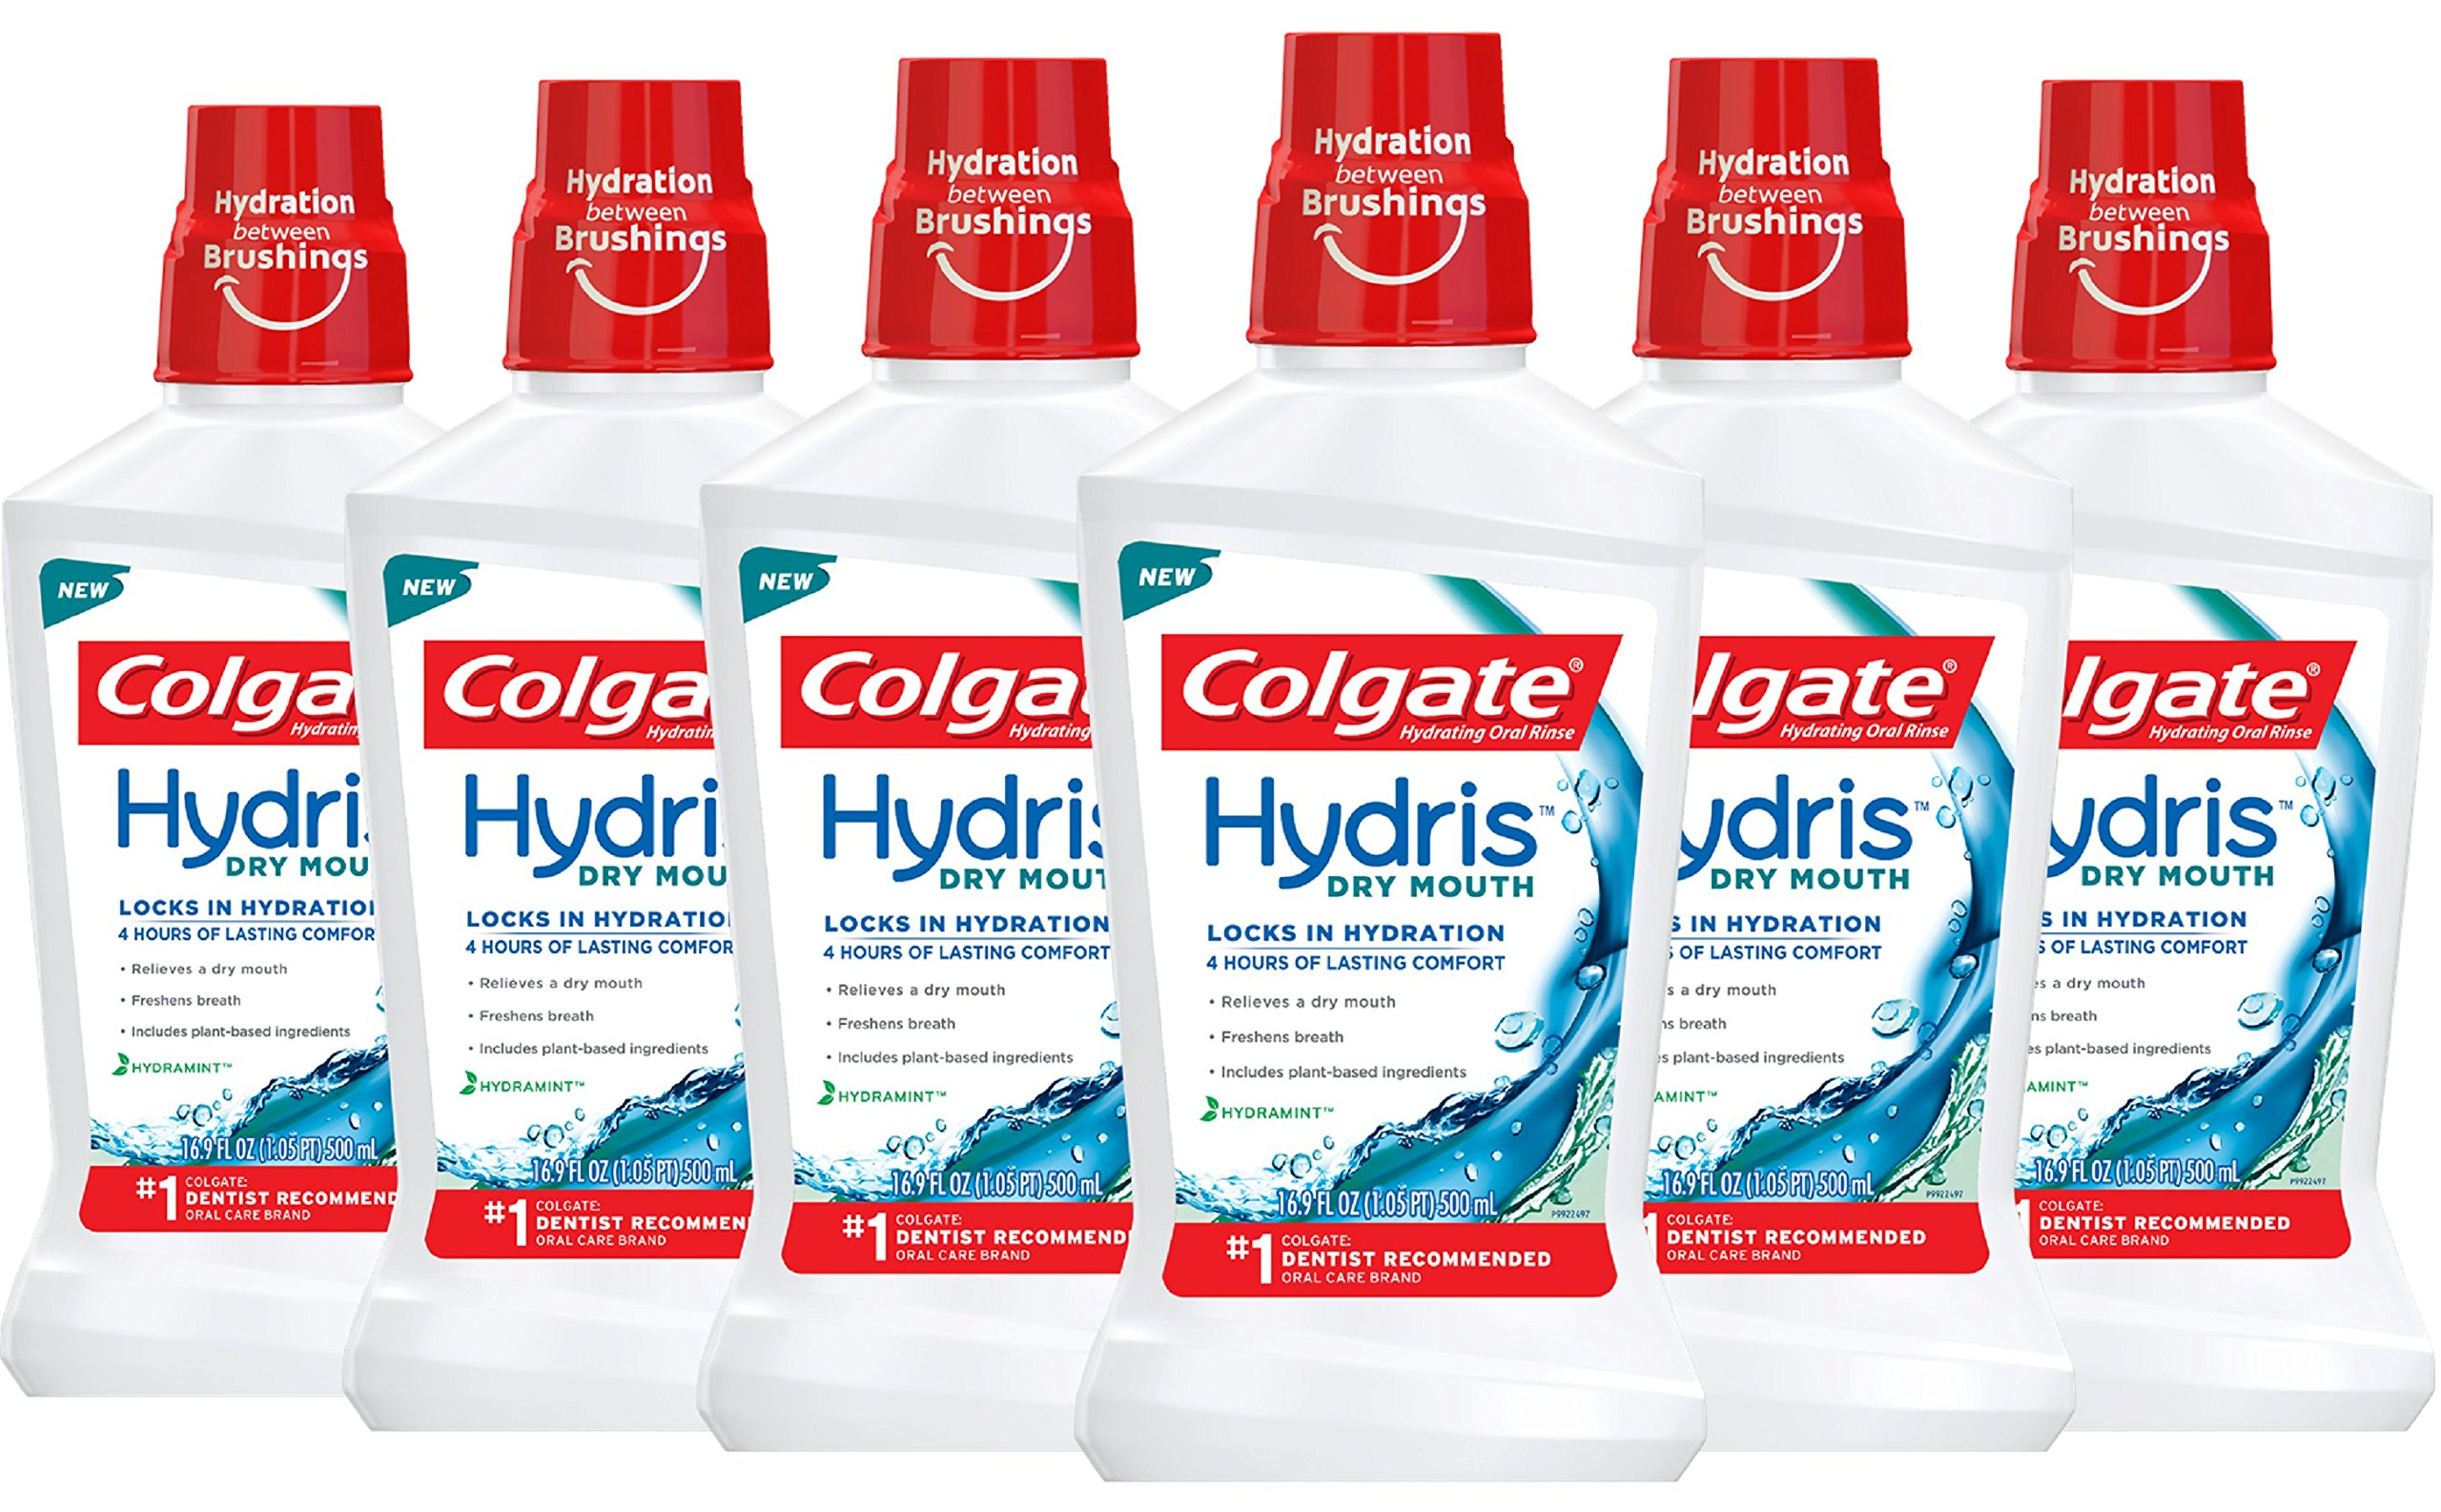 Colgate Hydris Dry Mouth Mouthwash, 16.9 fl. oz. (Pack of 6)